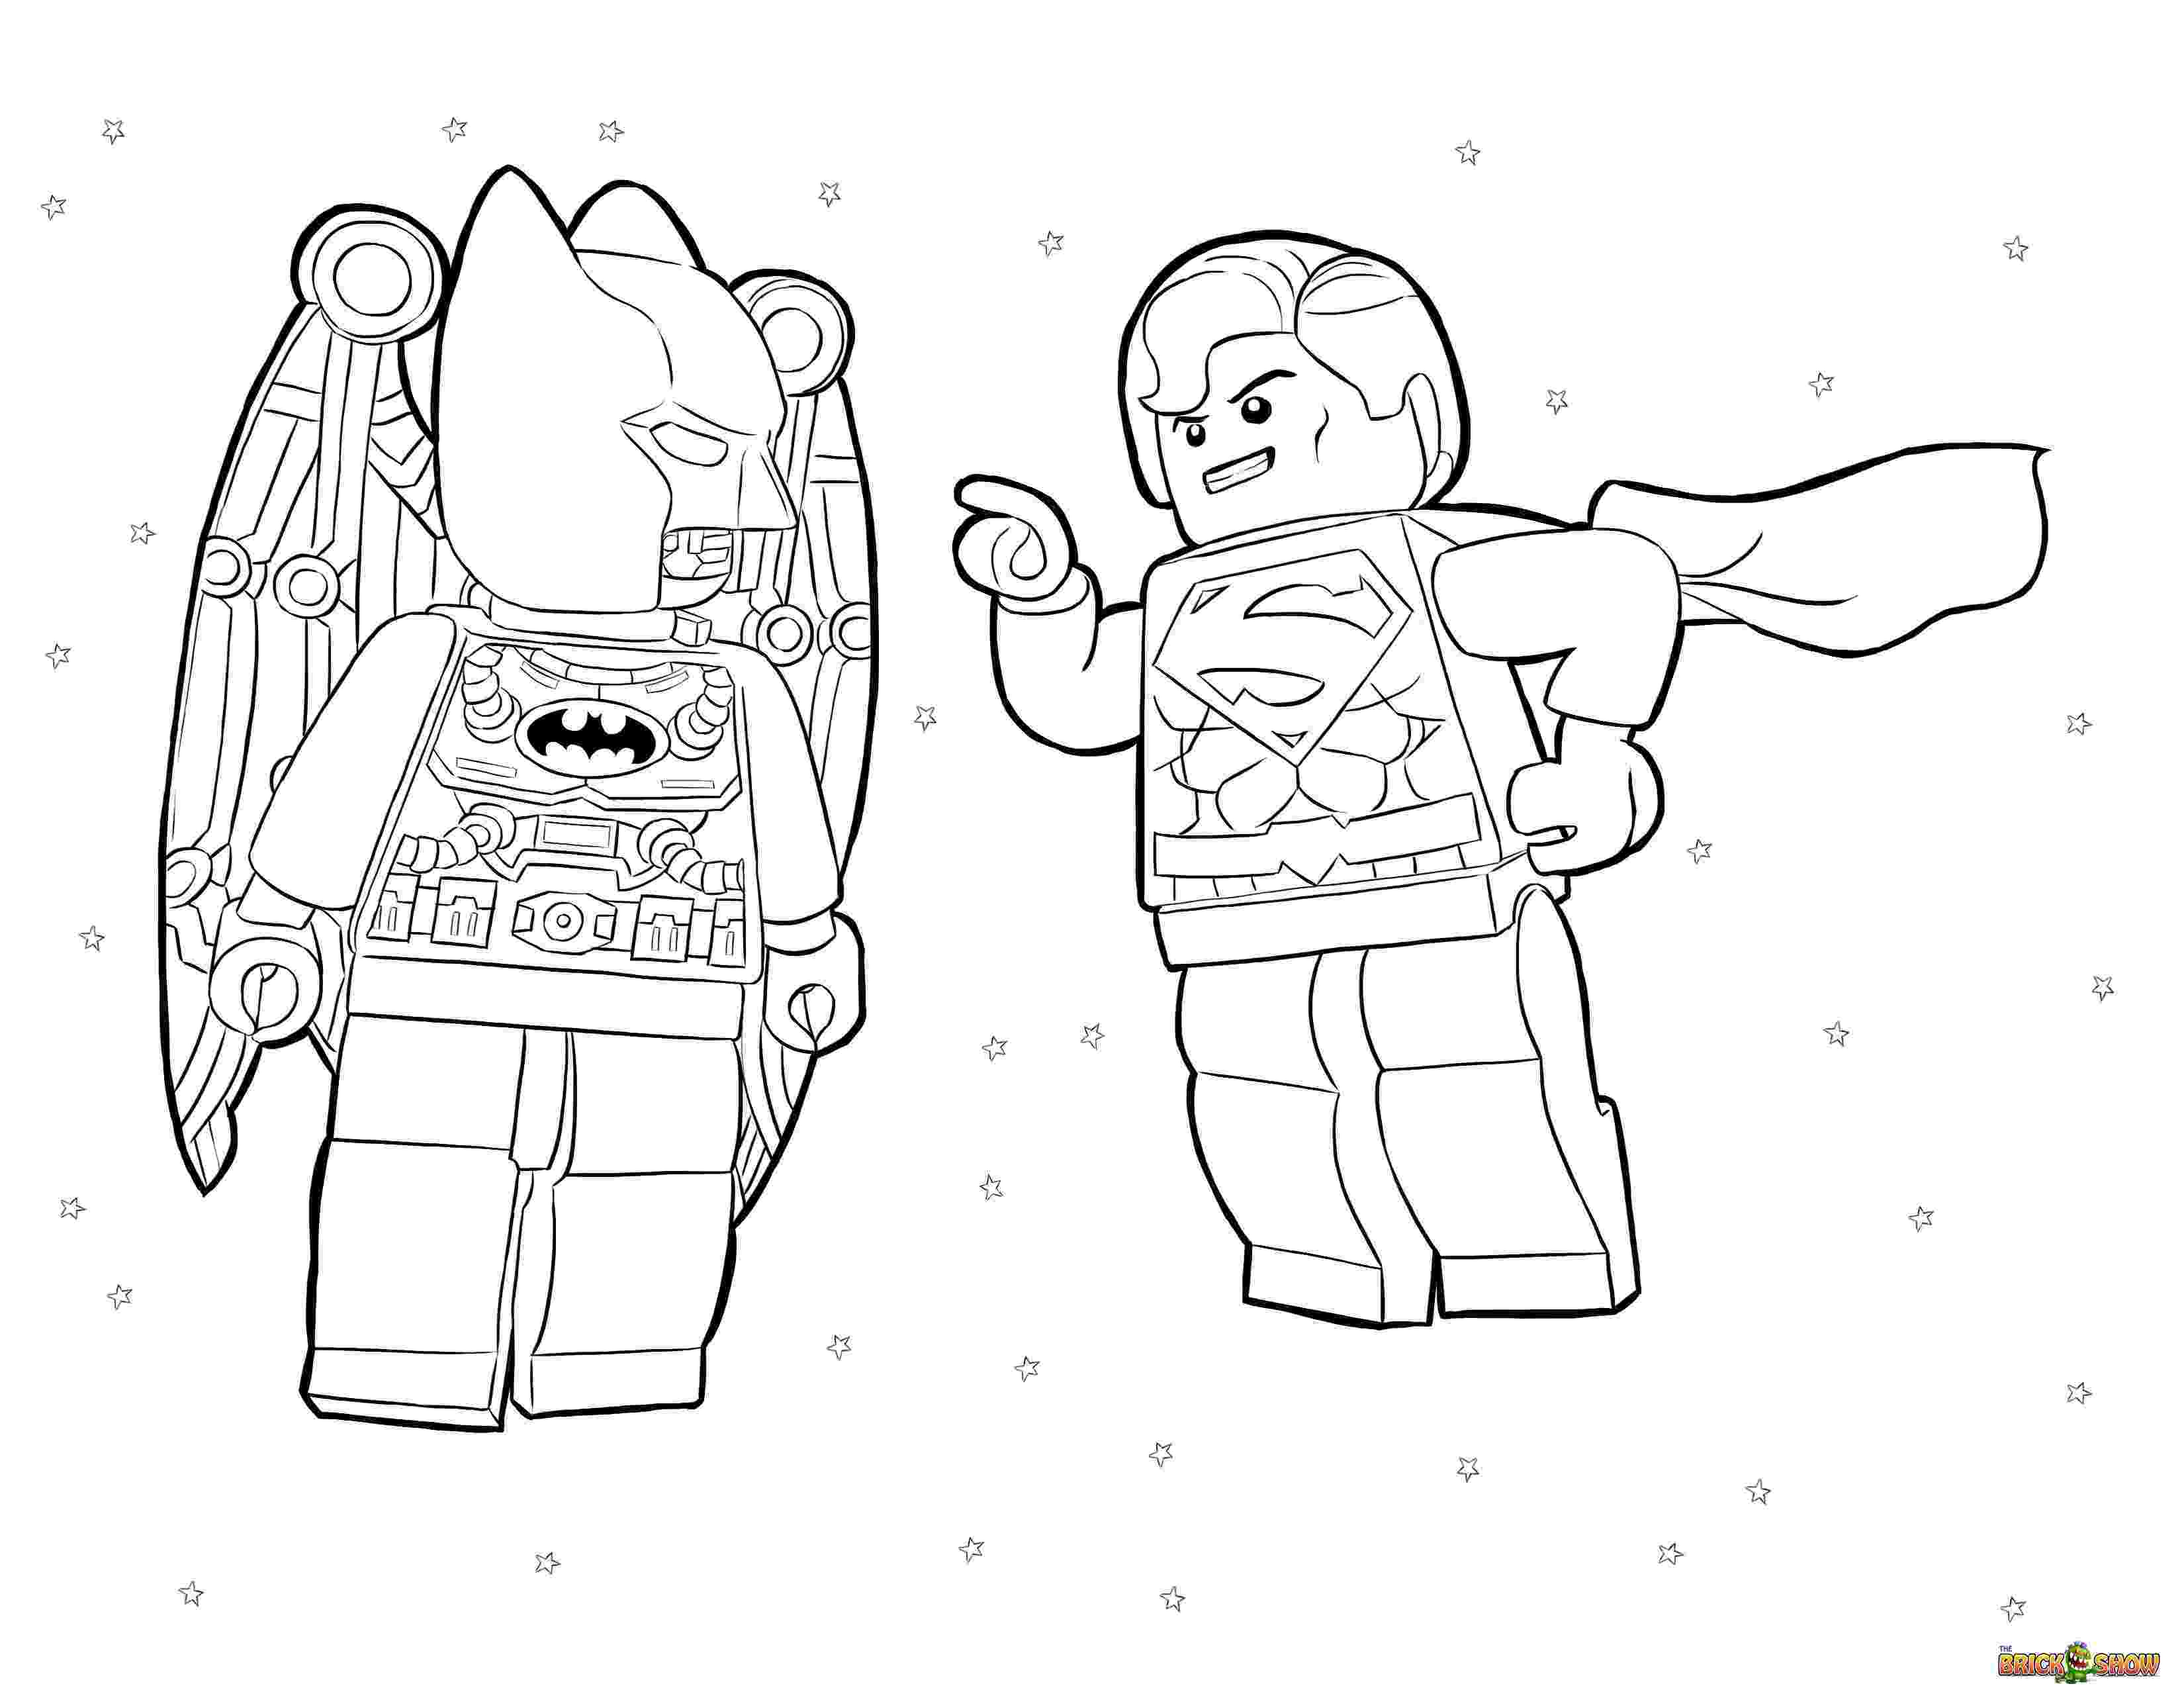 lego super heroes coloring pages 15 lego jurassic world kleurplaat krijg duizenden heroes pages coloring lego super